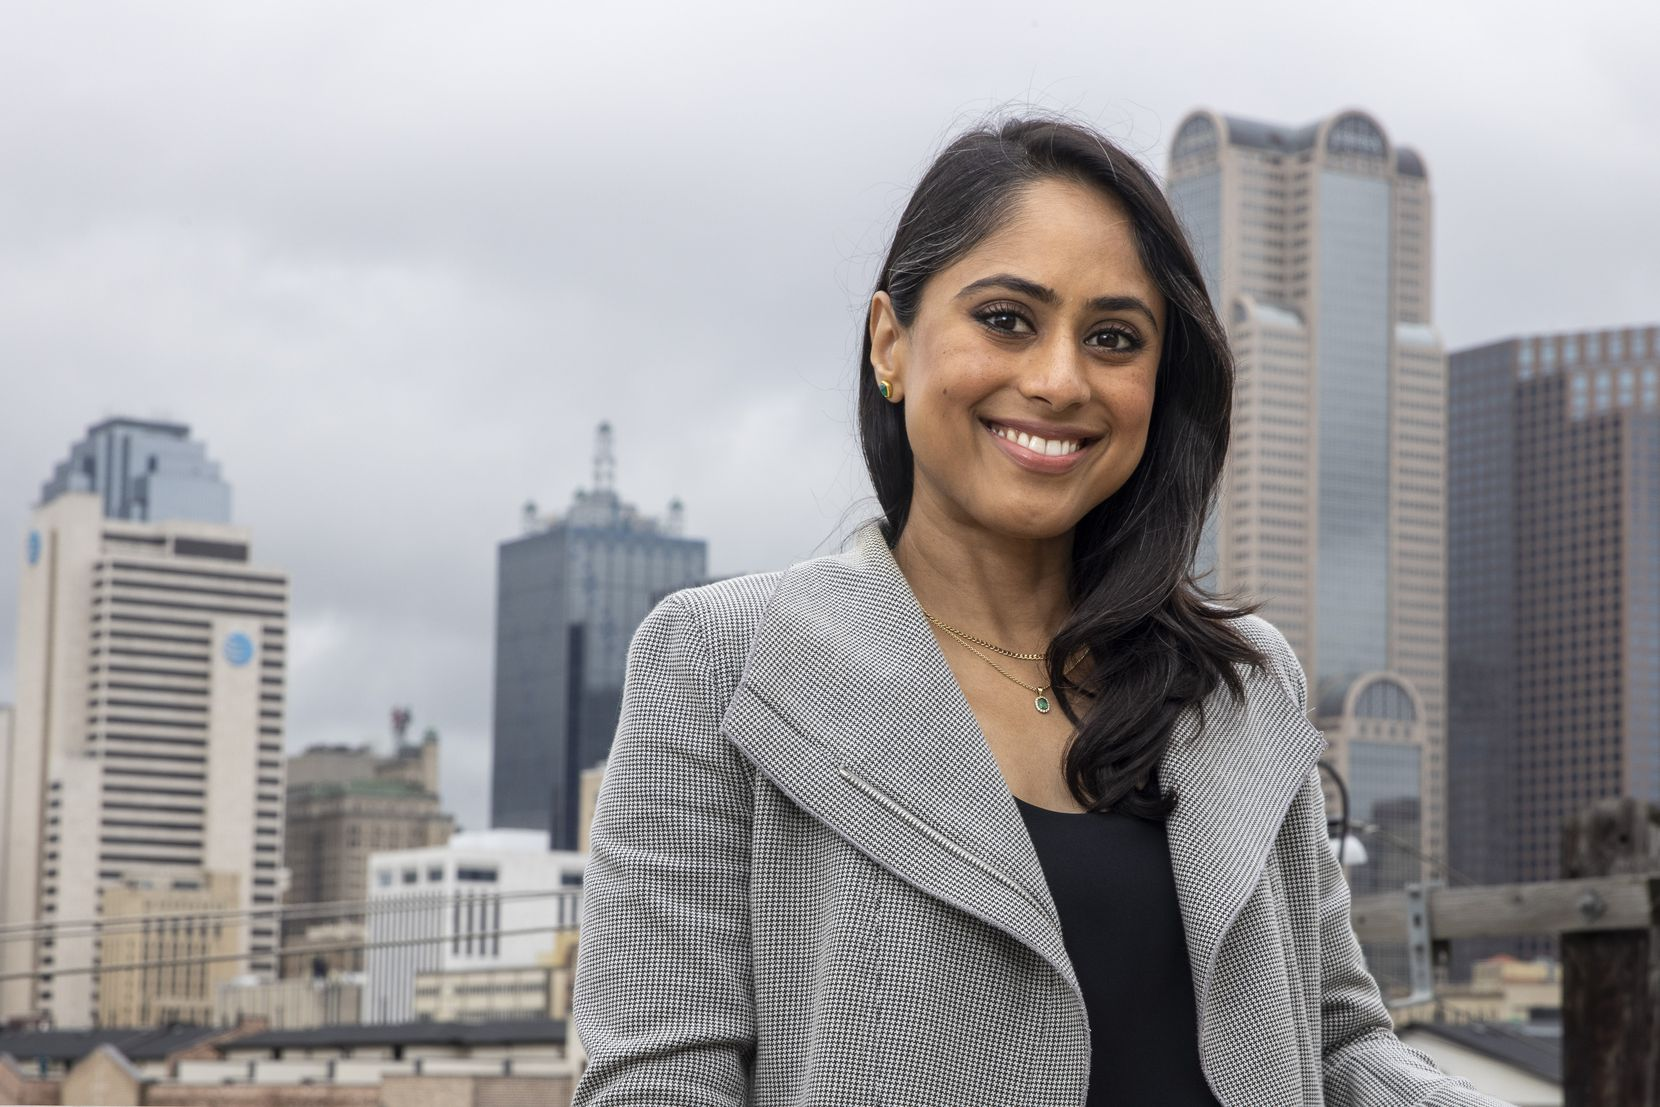 Dallas City Council District 2 candidate Sana Syed posed for a portrait at her home in downtown Dallas on Friday, May 21, 2021. Syed is one of two candidates running to represent parts of downtown and North and East Dallas in the June 5 runoff. (Lynda M. González/The Dallas Morning News)